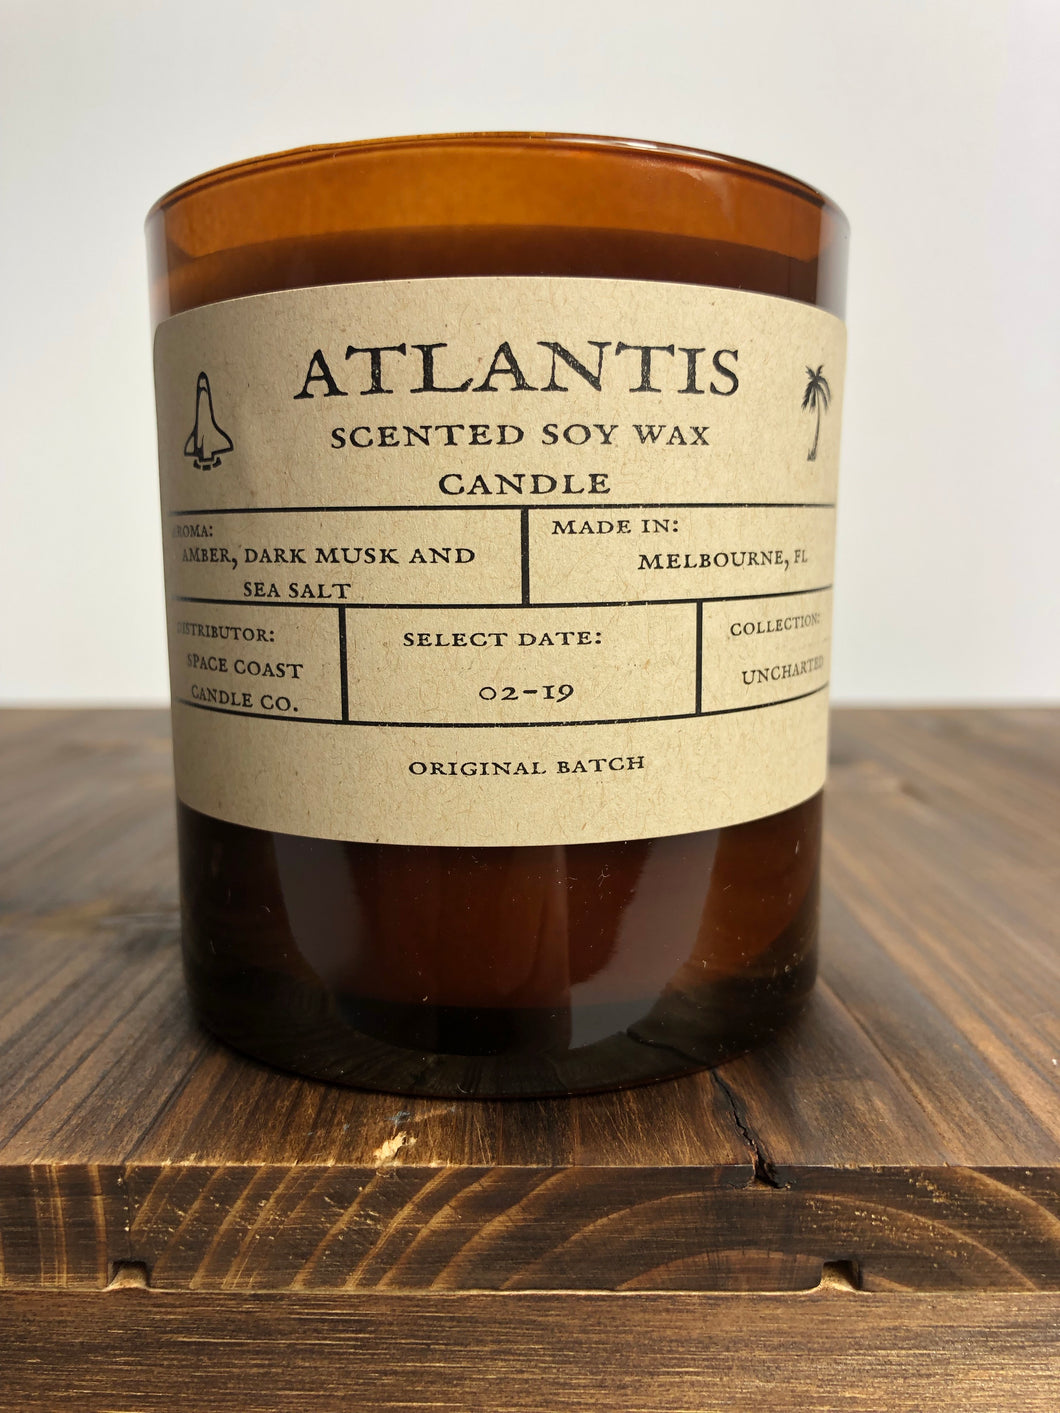 Atlantis 10 oz Soy Candle - Uncharted Collection - Space Coast Candle Co.